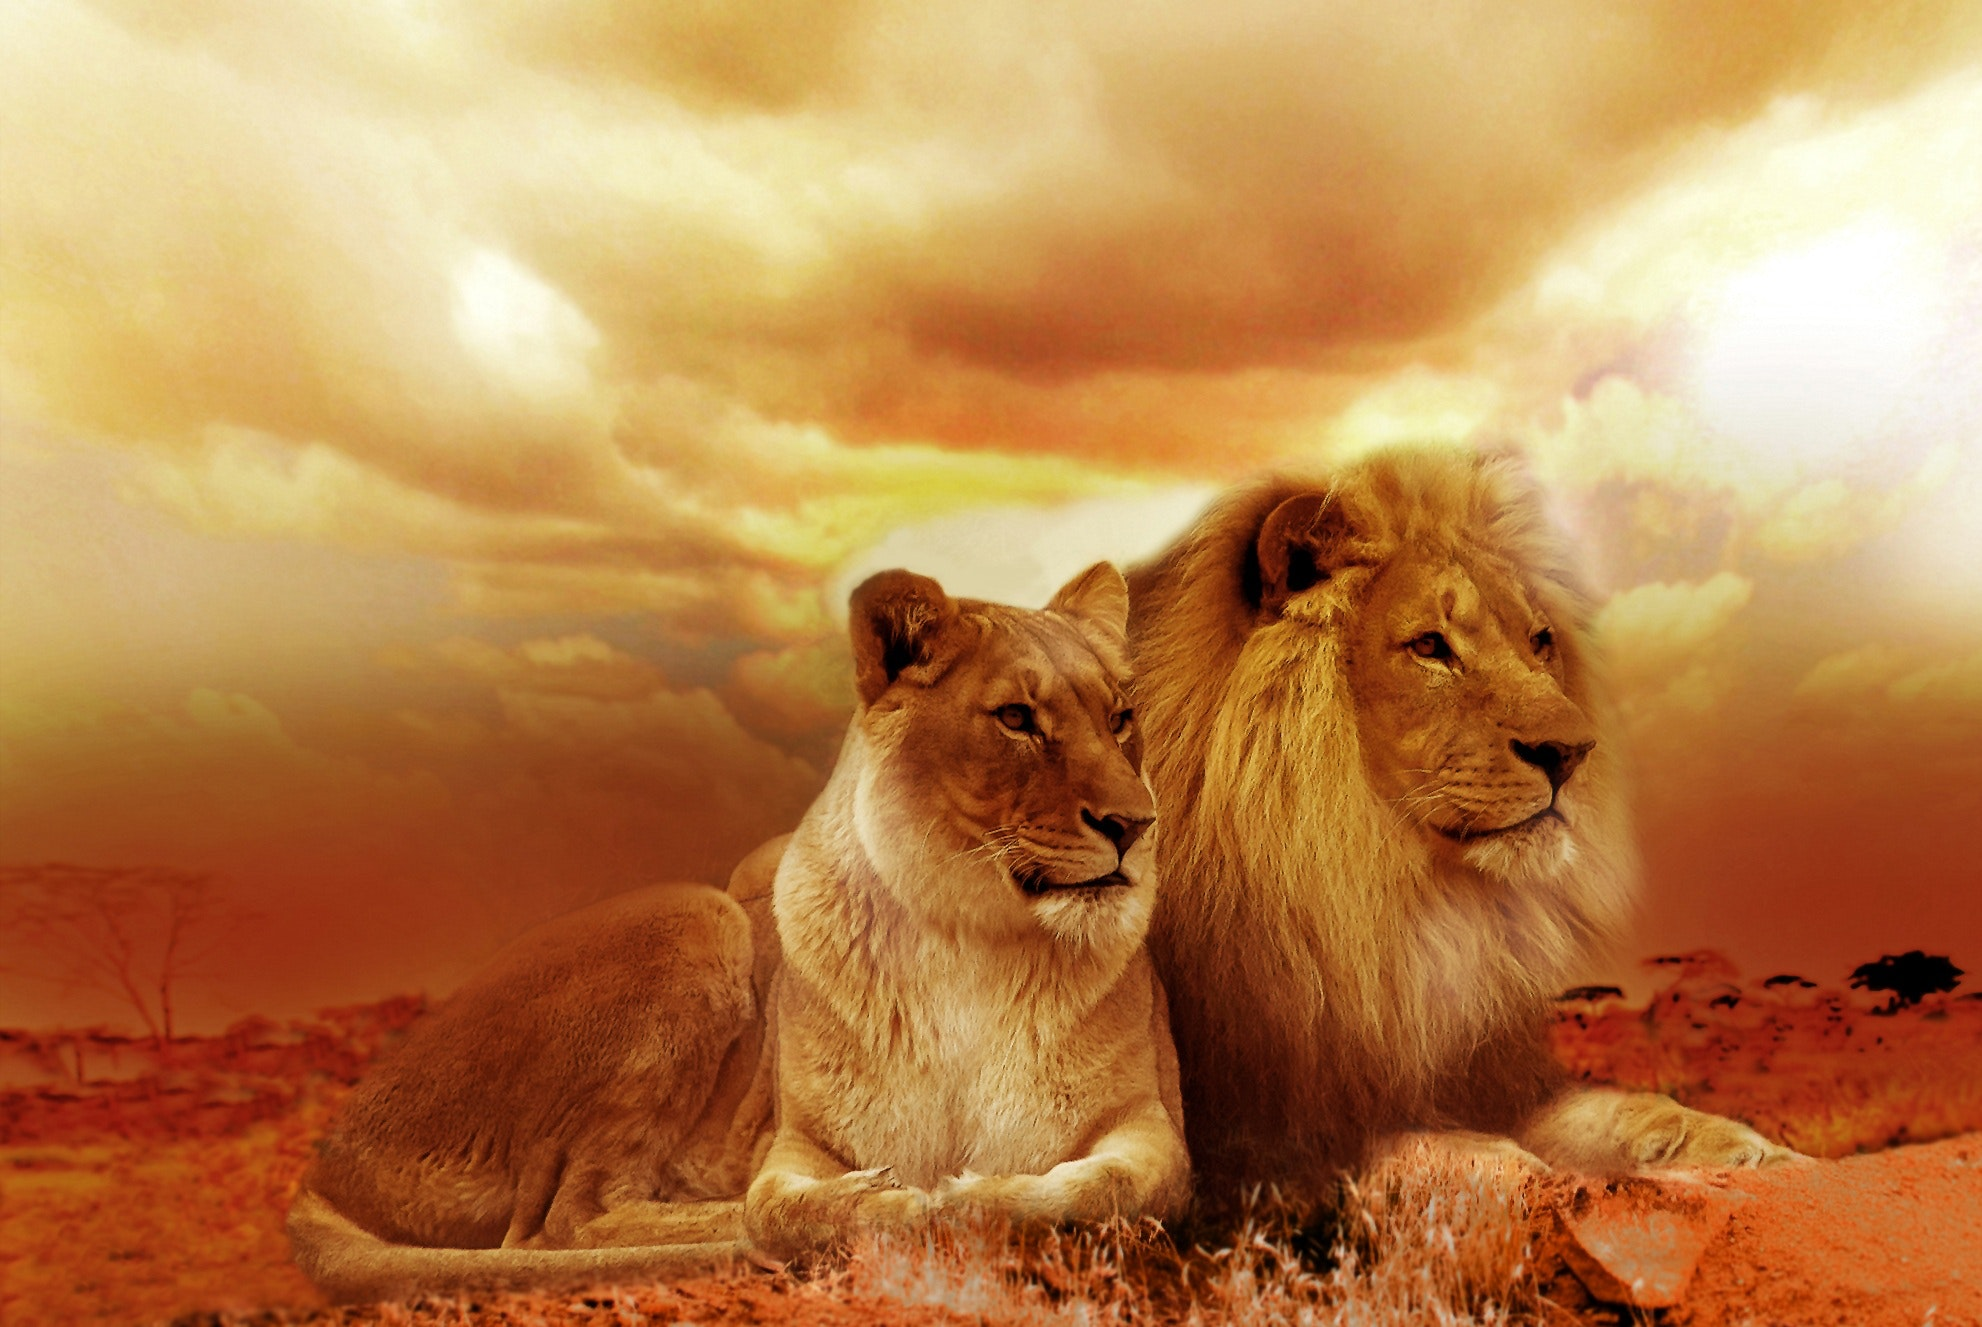 Lion and Lioness Under White Sky during Sunset, Safari, Sunset, Wildlife, Outback, HQ Photo